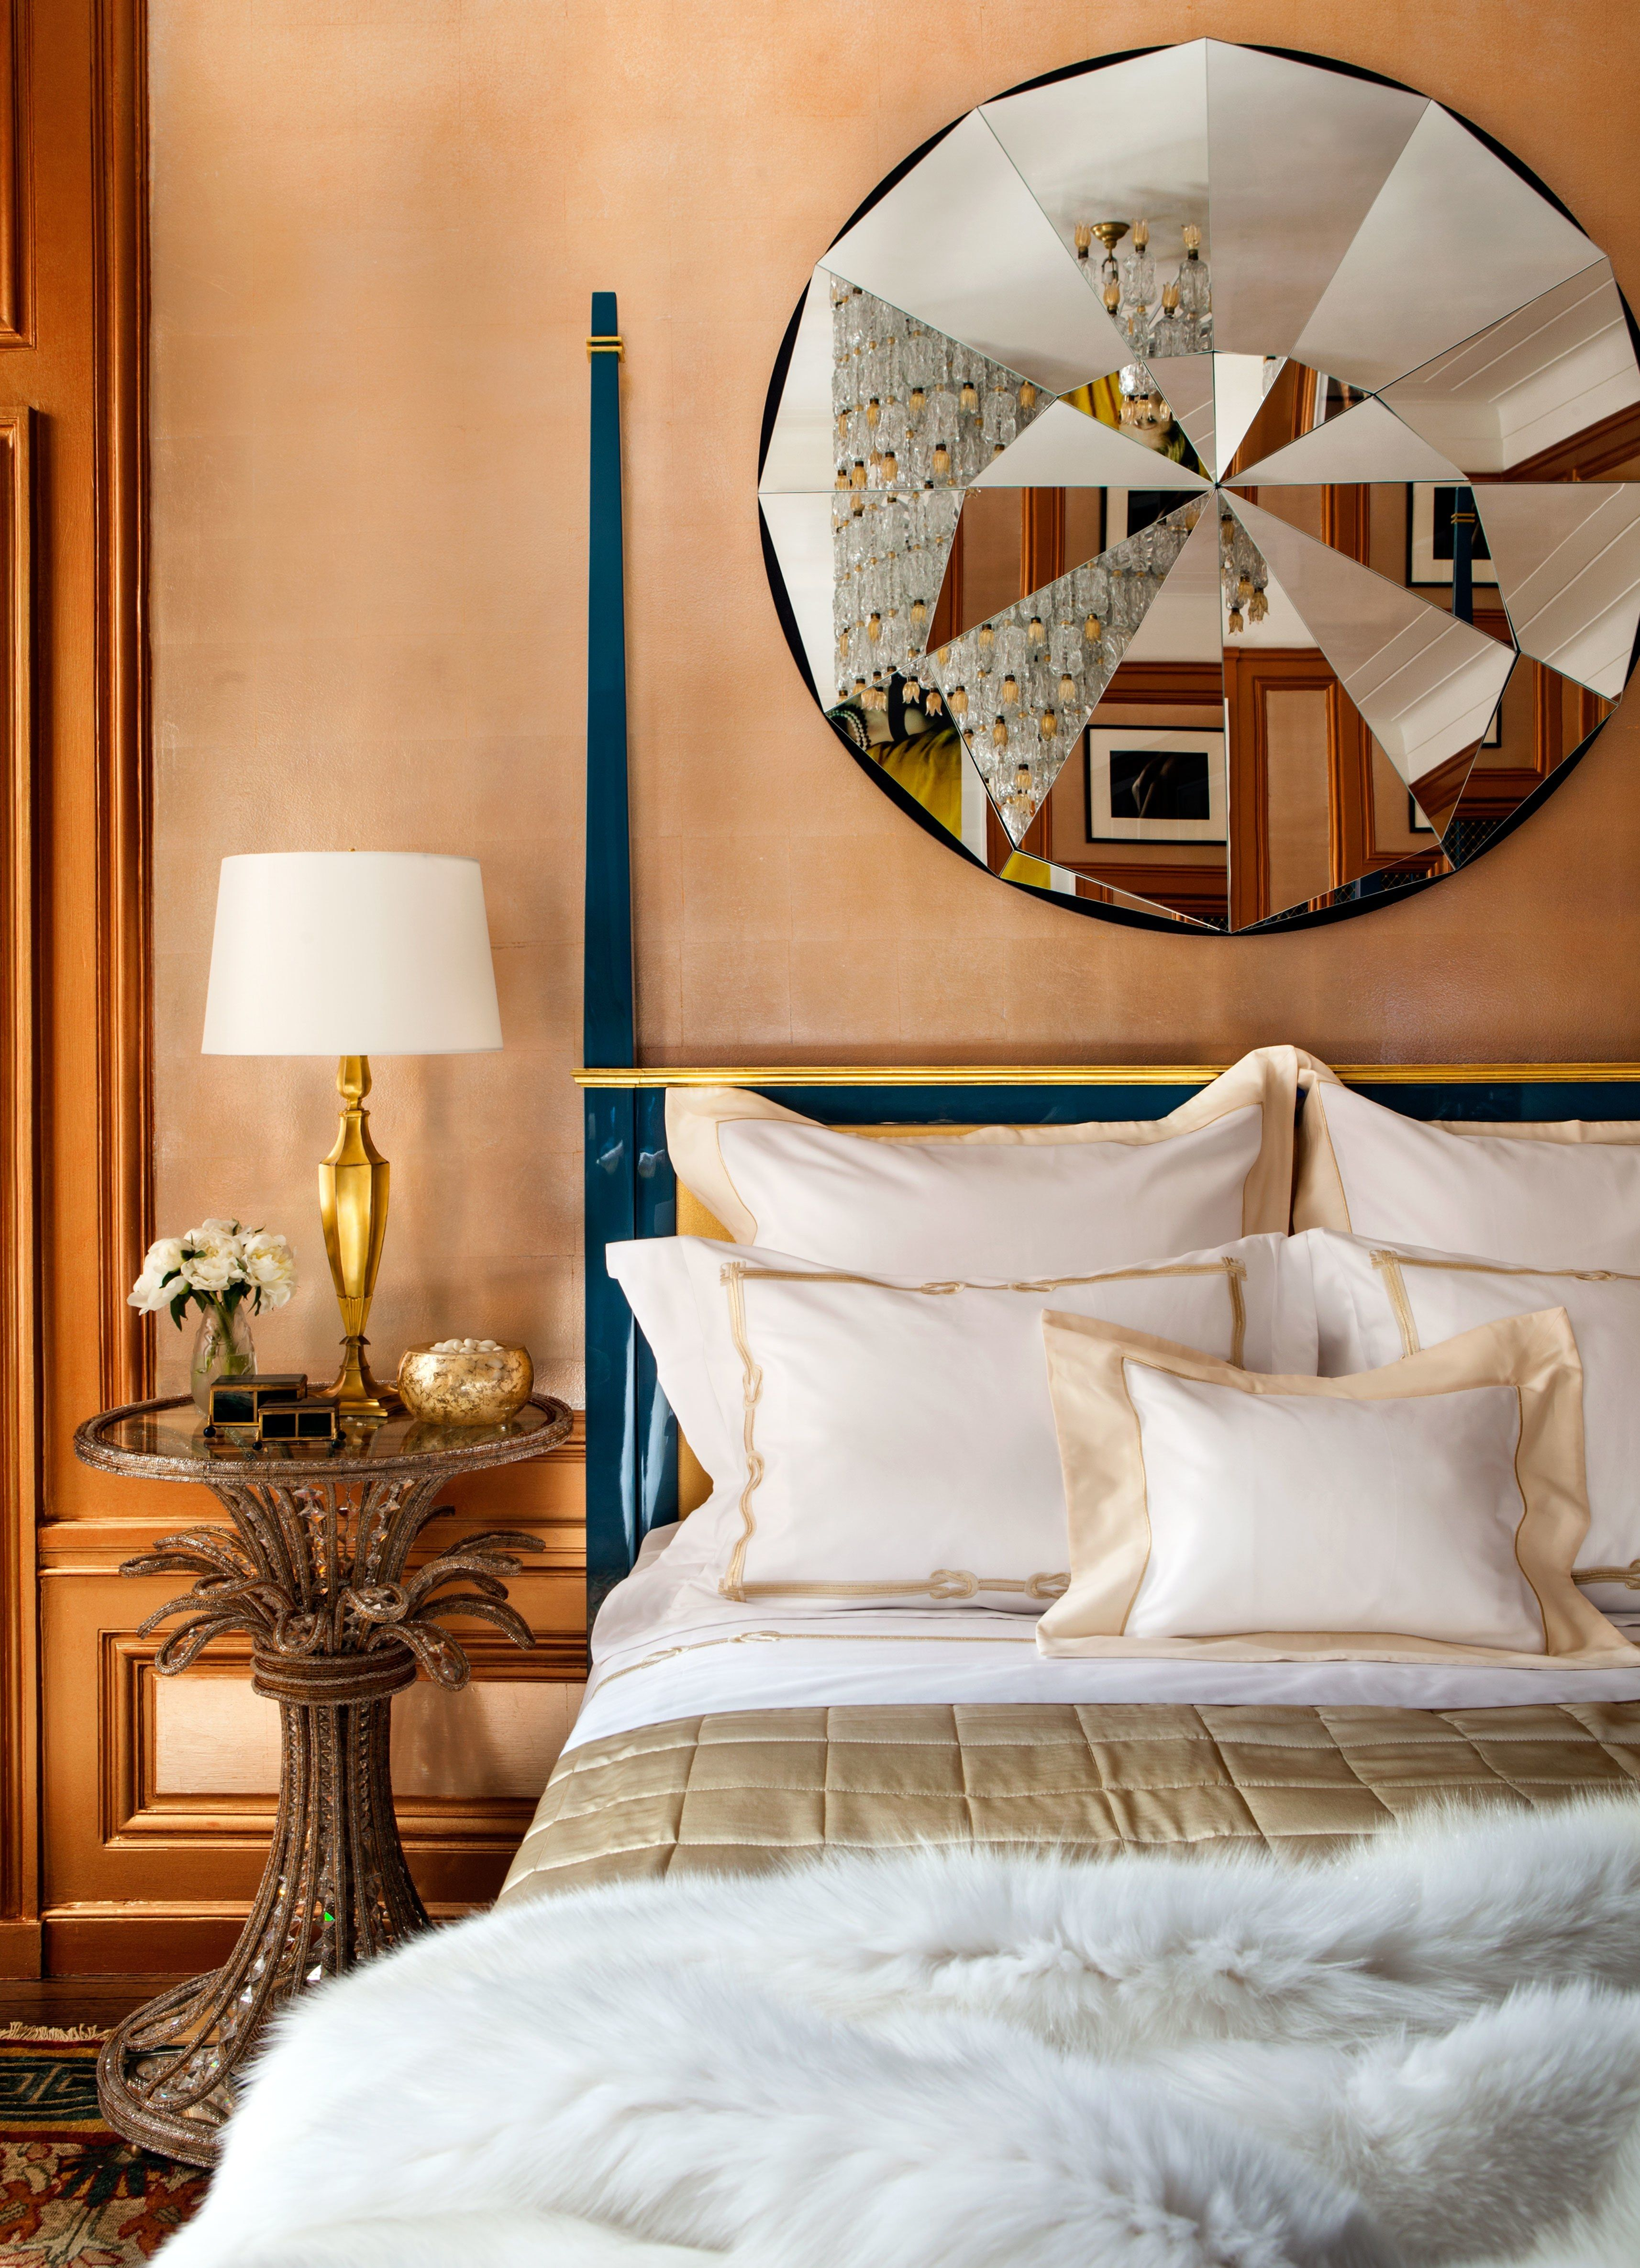 How To Make A Bed Like An Interior Designer Photos Architectural Digest